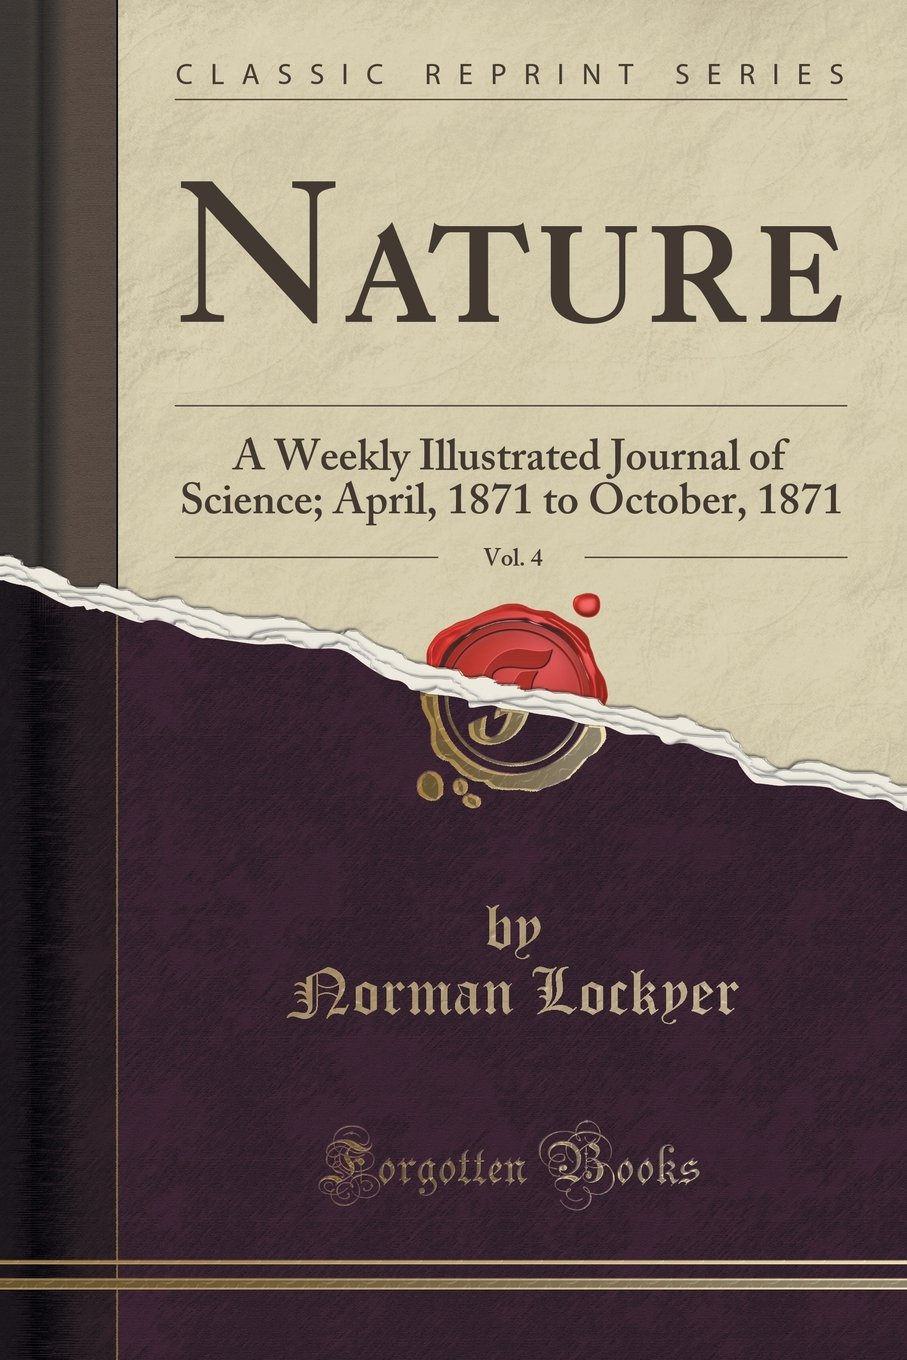 Nature, Vol. 4: A Weekly Illustrated Journal of Science; April, 1871 to October, 1871 (Classic Reprint) PDF